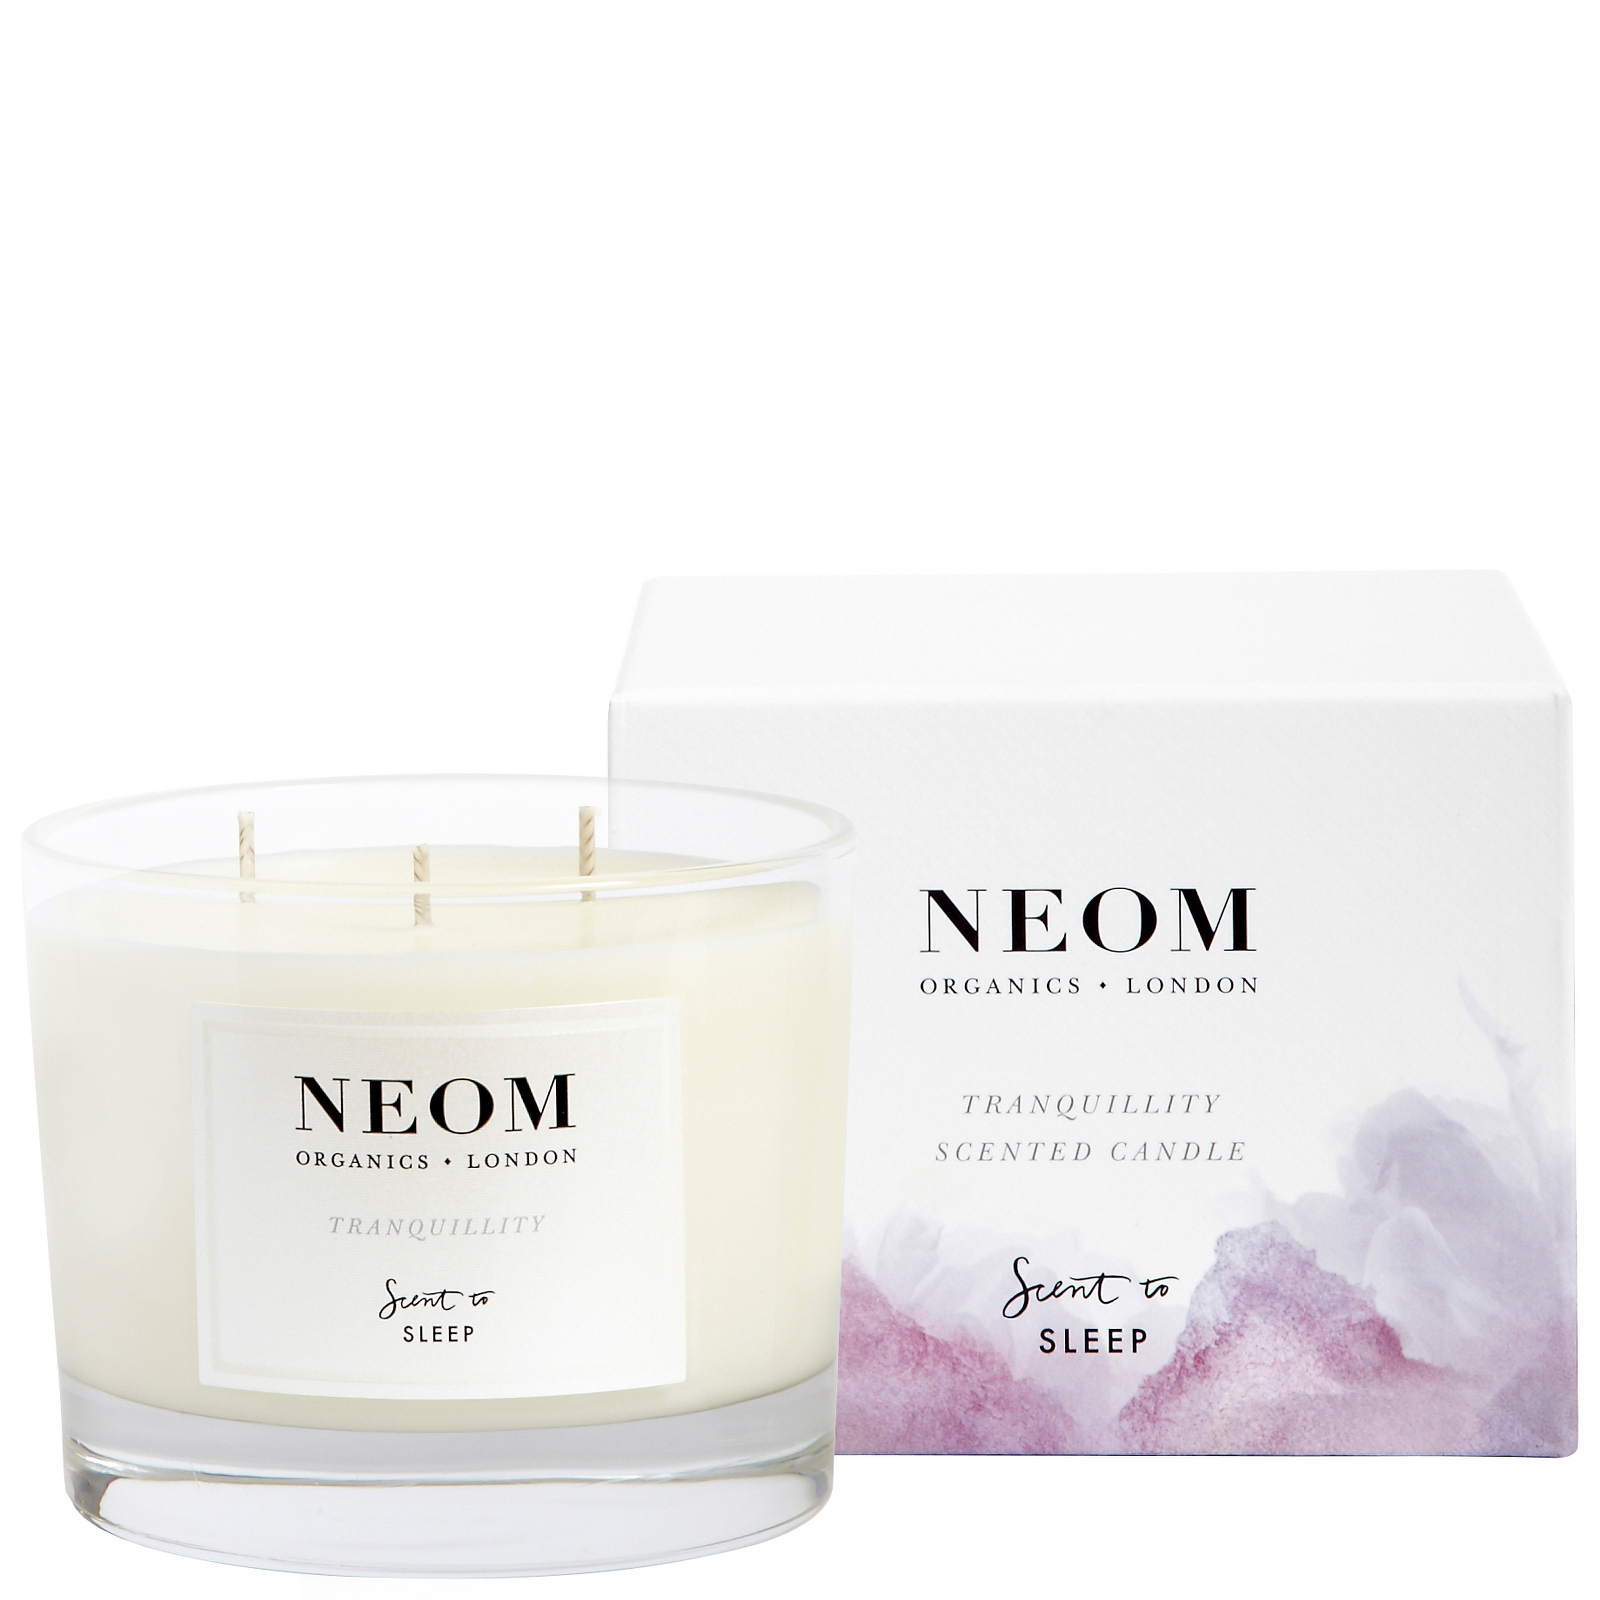 Neom Organics London Scent To Sleep Tranquillity Scented Candle (3 Wick) 420g